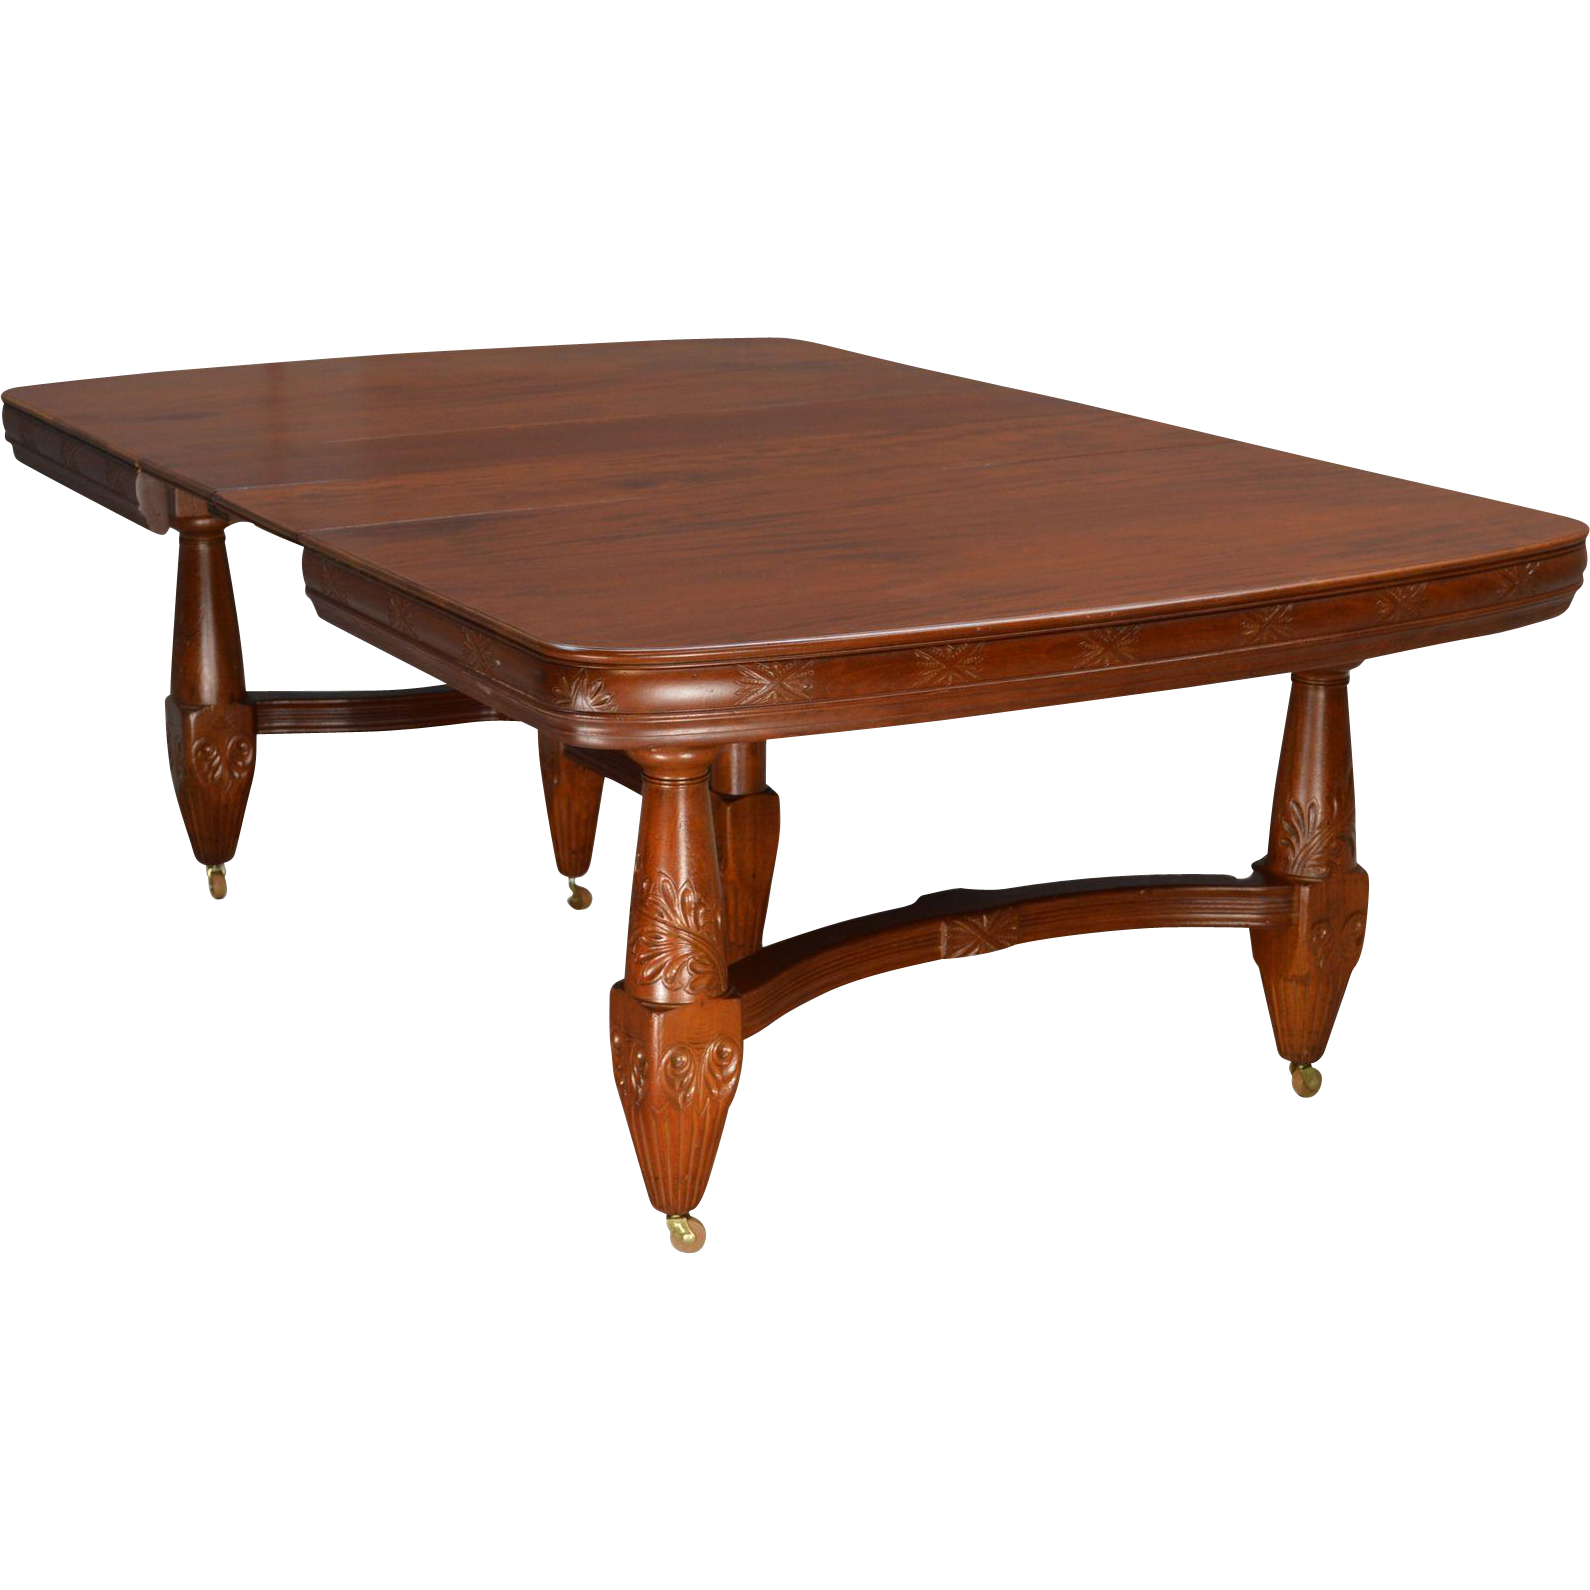 Victorian large Mahogany Dining Table from  : 169401L from www.rubylane.com size 1590 x 1590 png 821kB